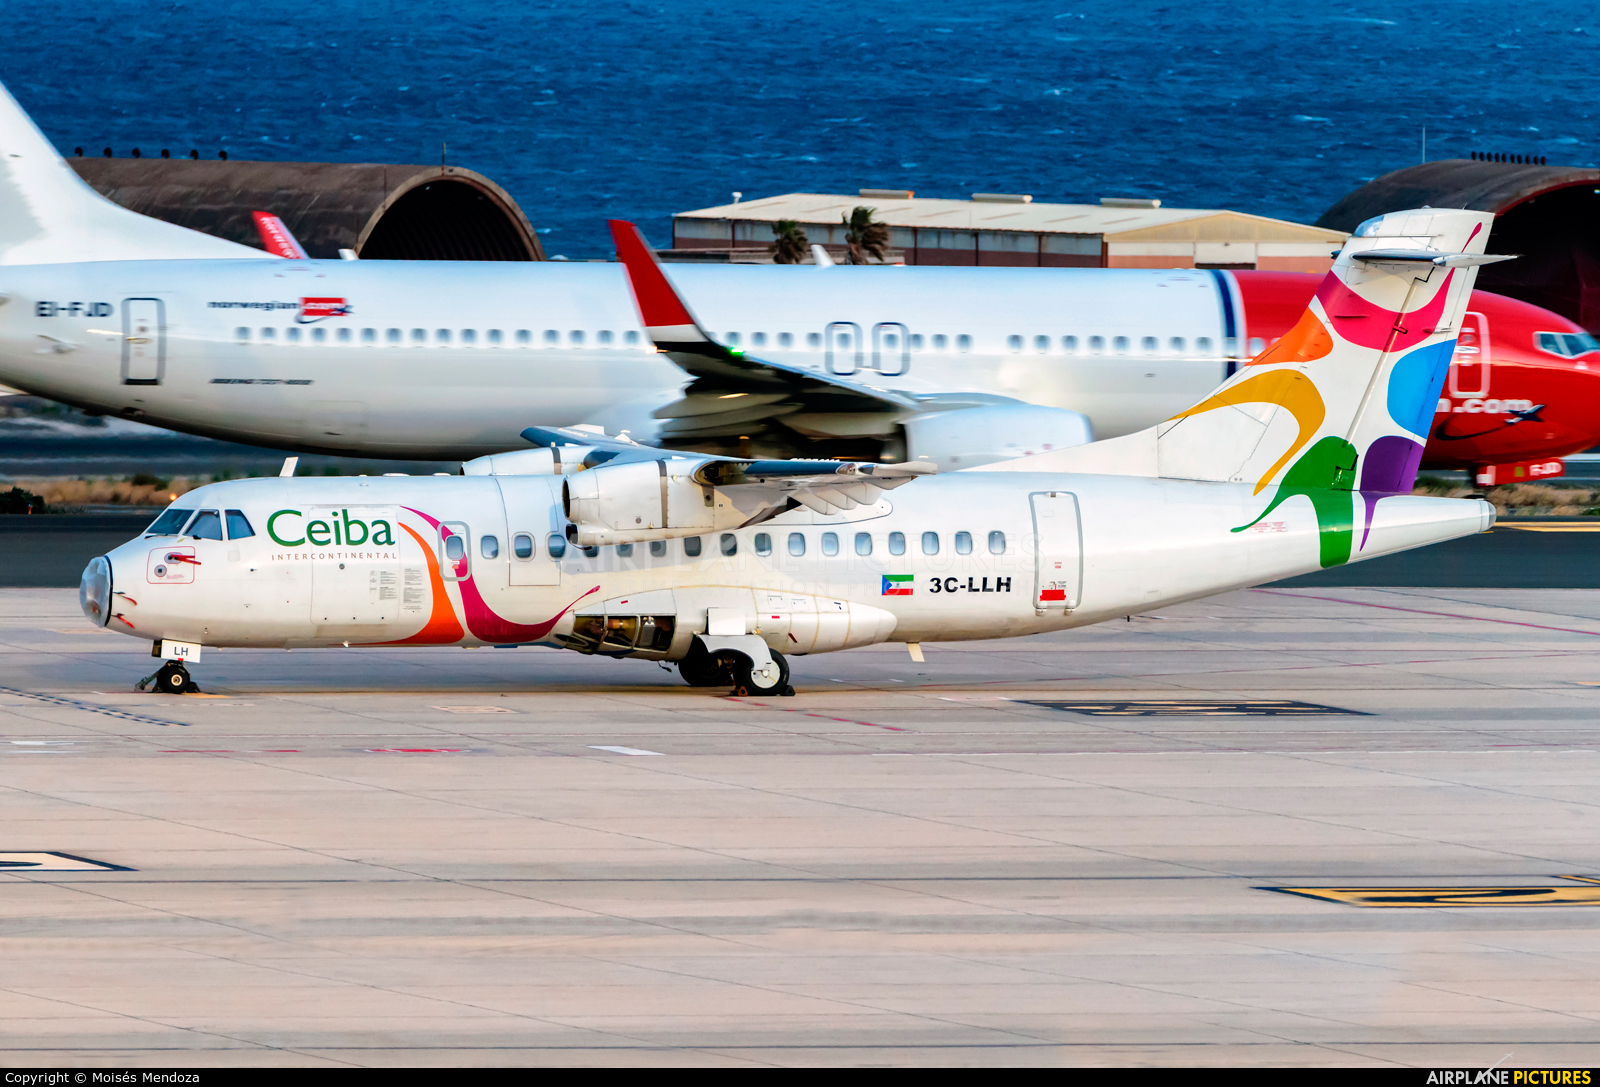 Ceiba Intercontinental 3C-LLH aircraft at Las Palmas de Gran Canaria